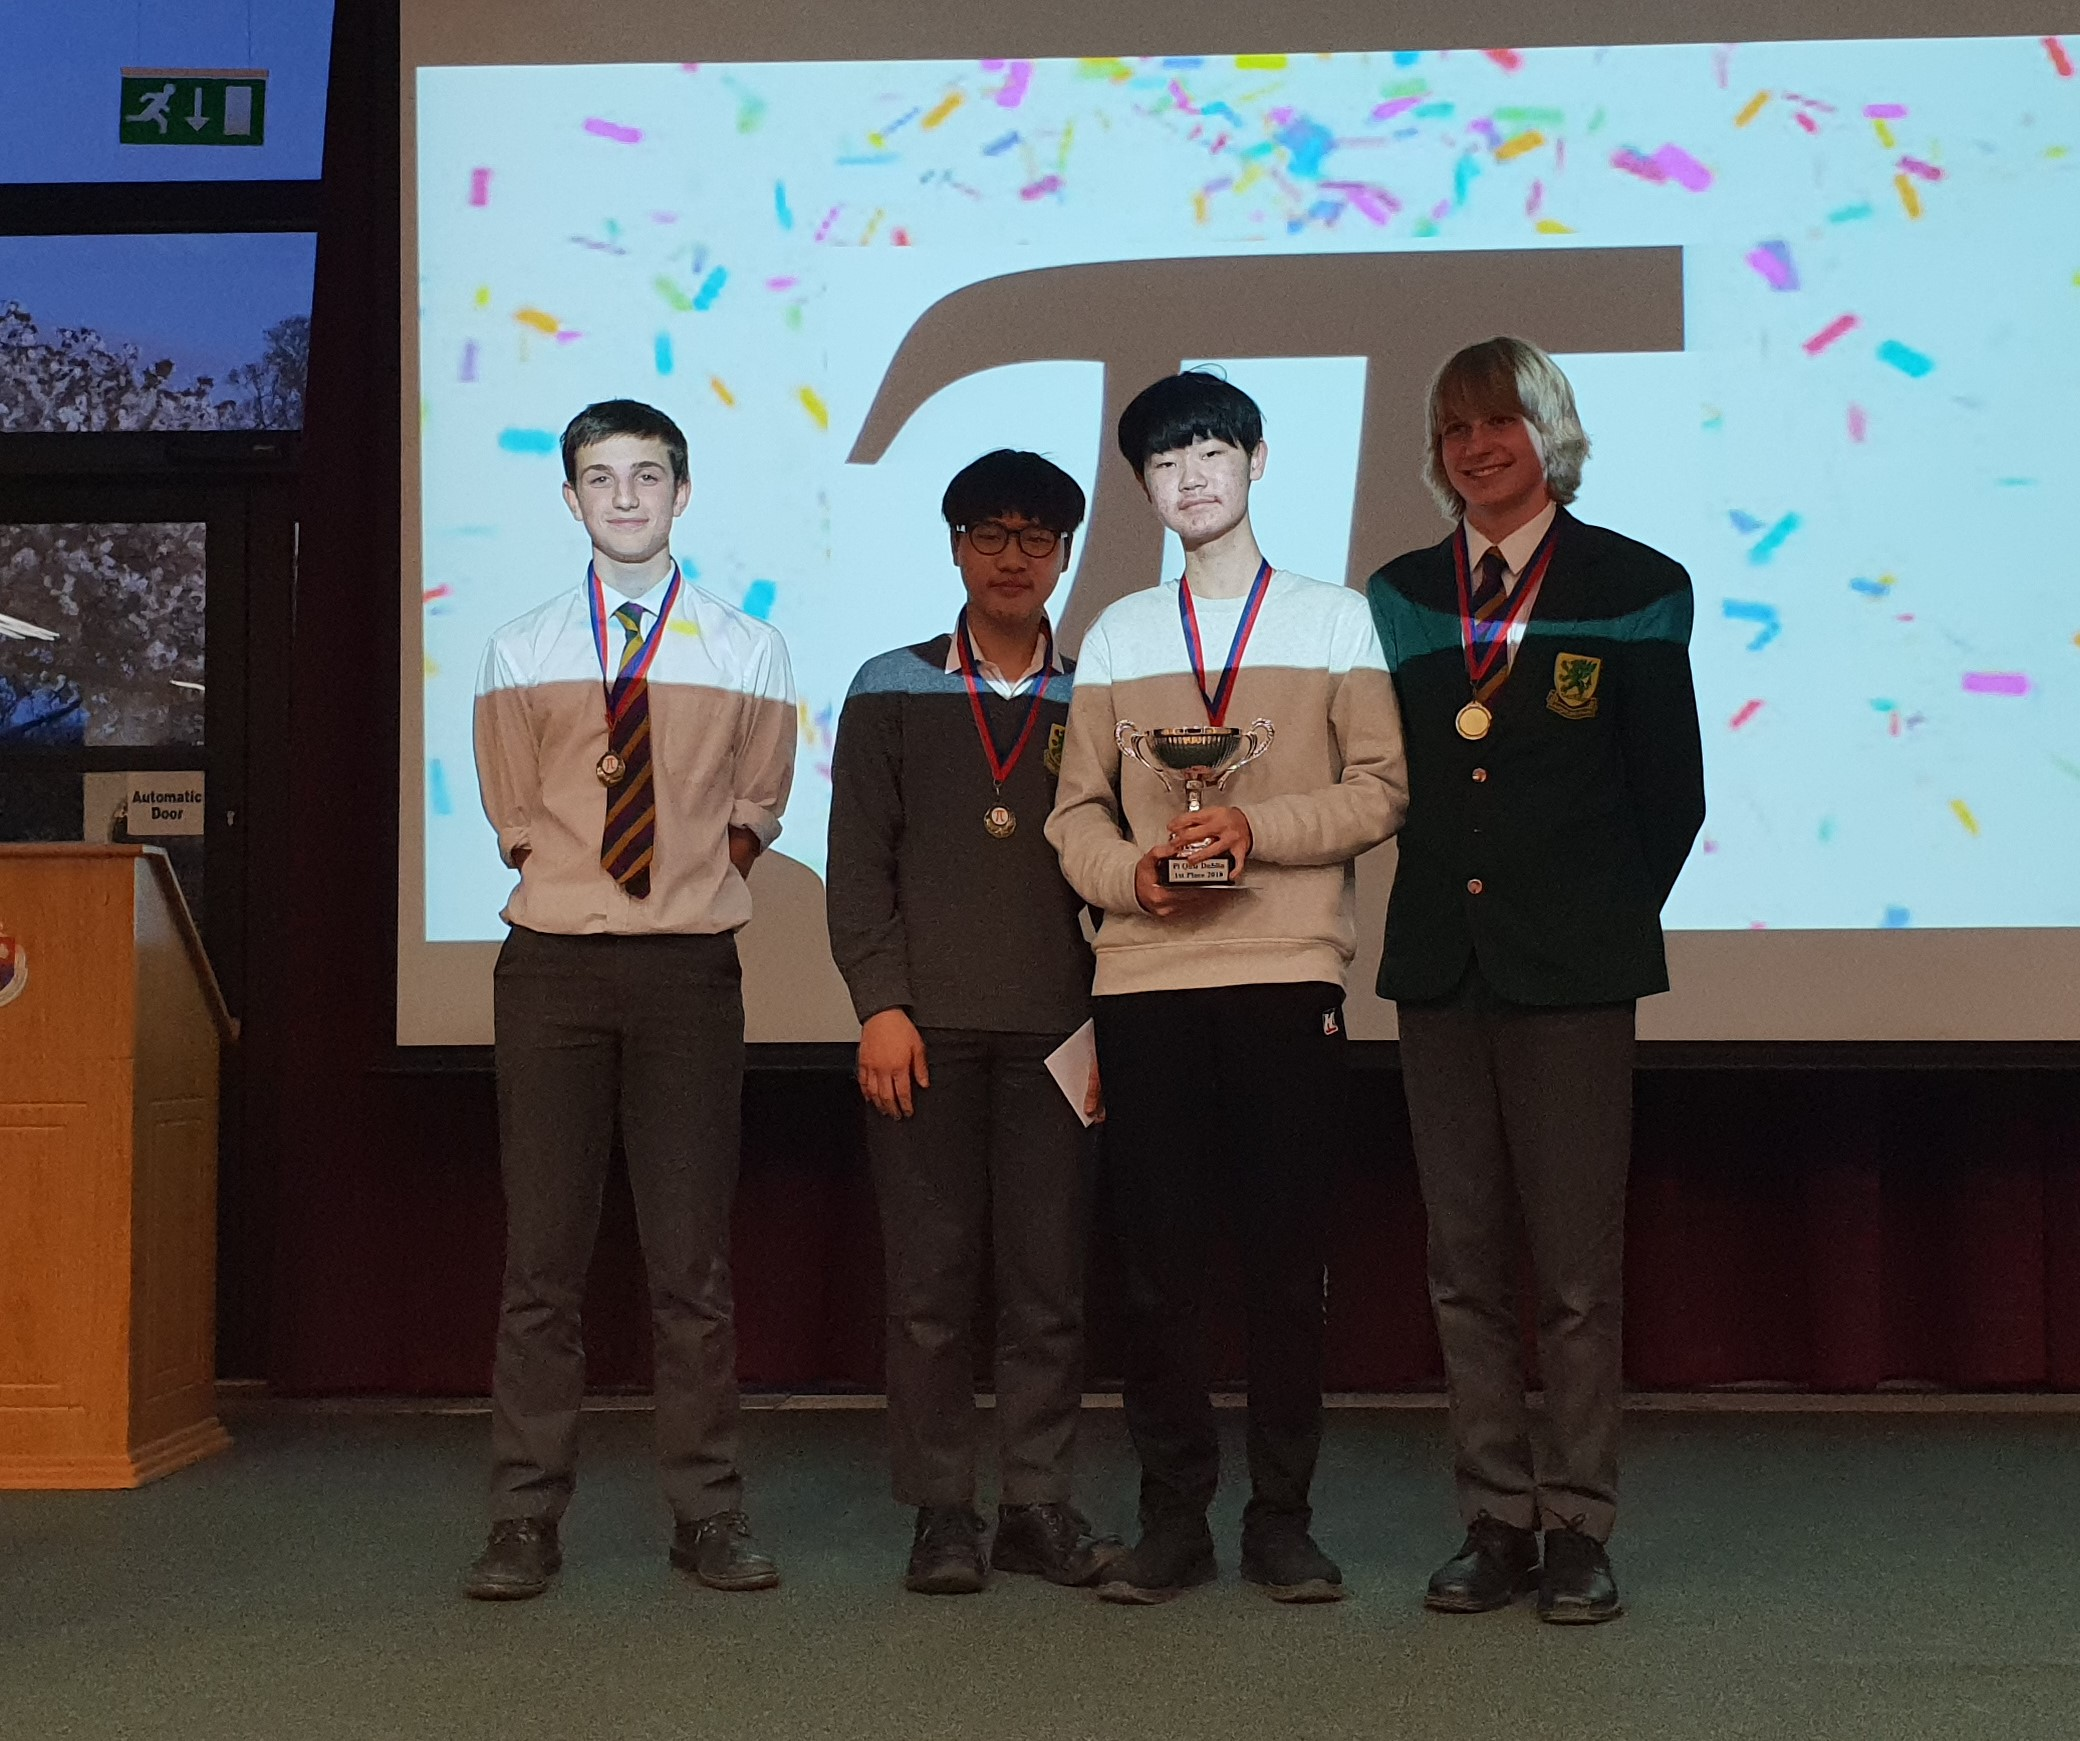 Dublin 2018 Winners: Sandford Park School